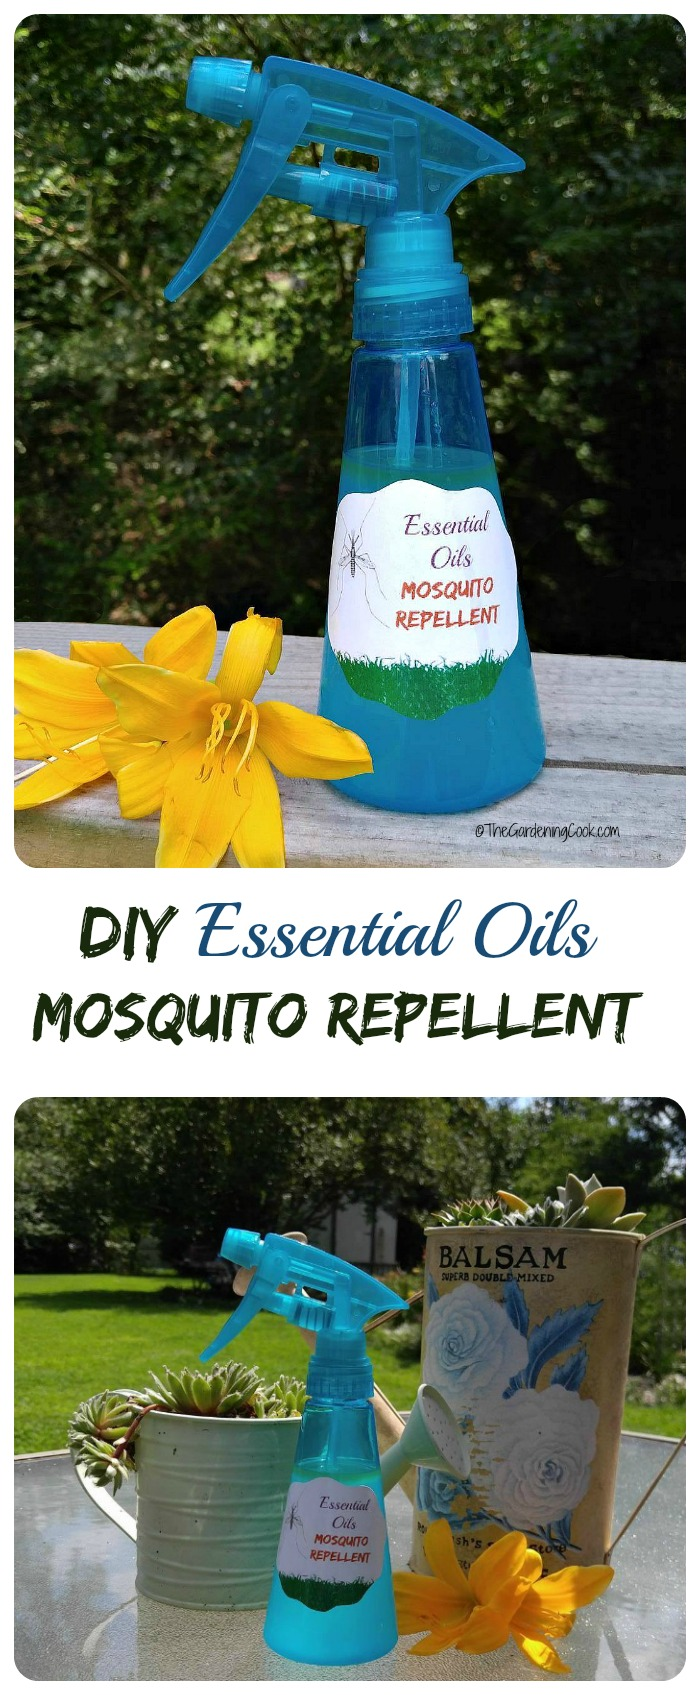 This Effective DIY Mosquito Repellent Spray Uses Essential Oils   Includes  FREE PRINTABLE For Bottle